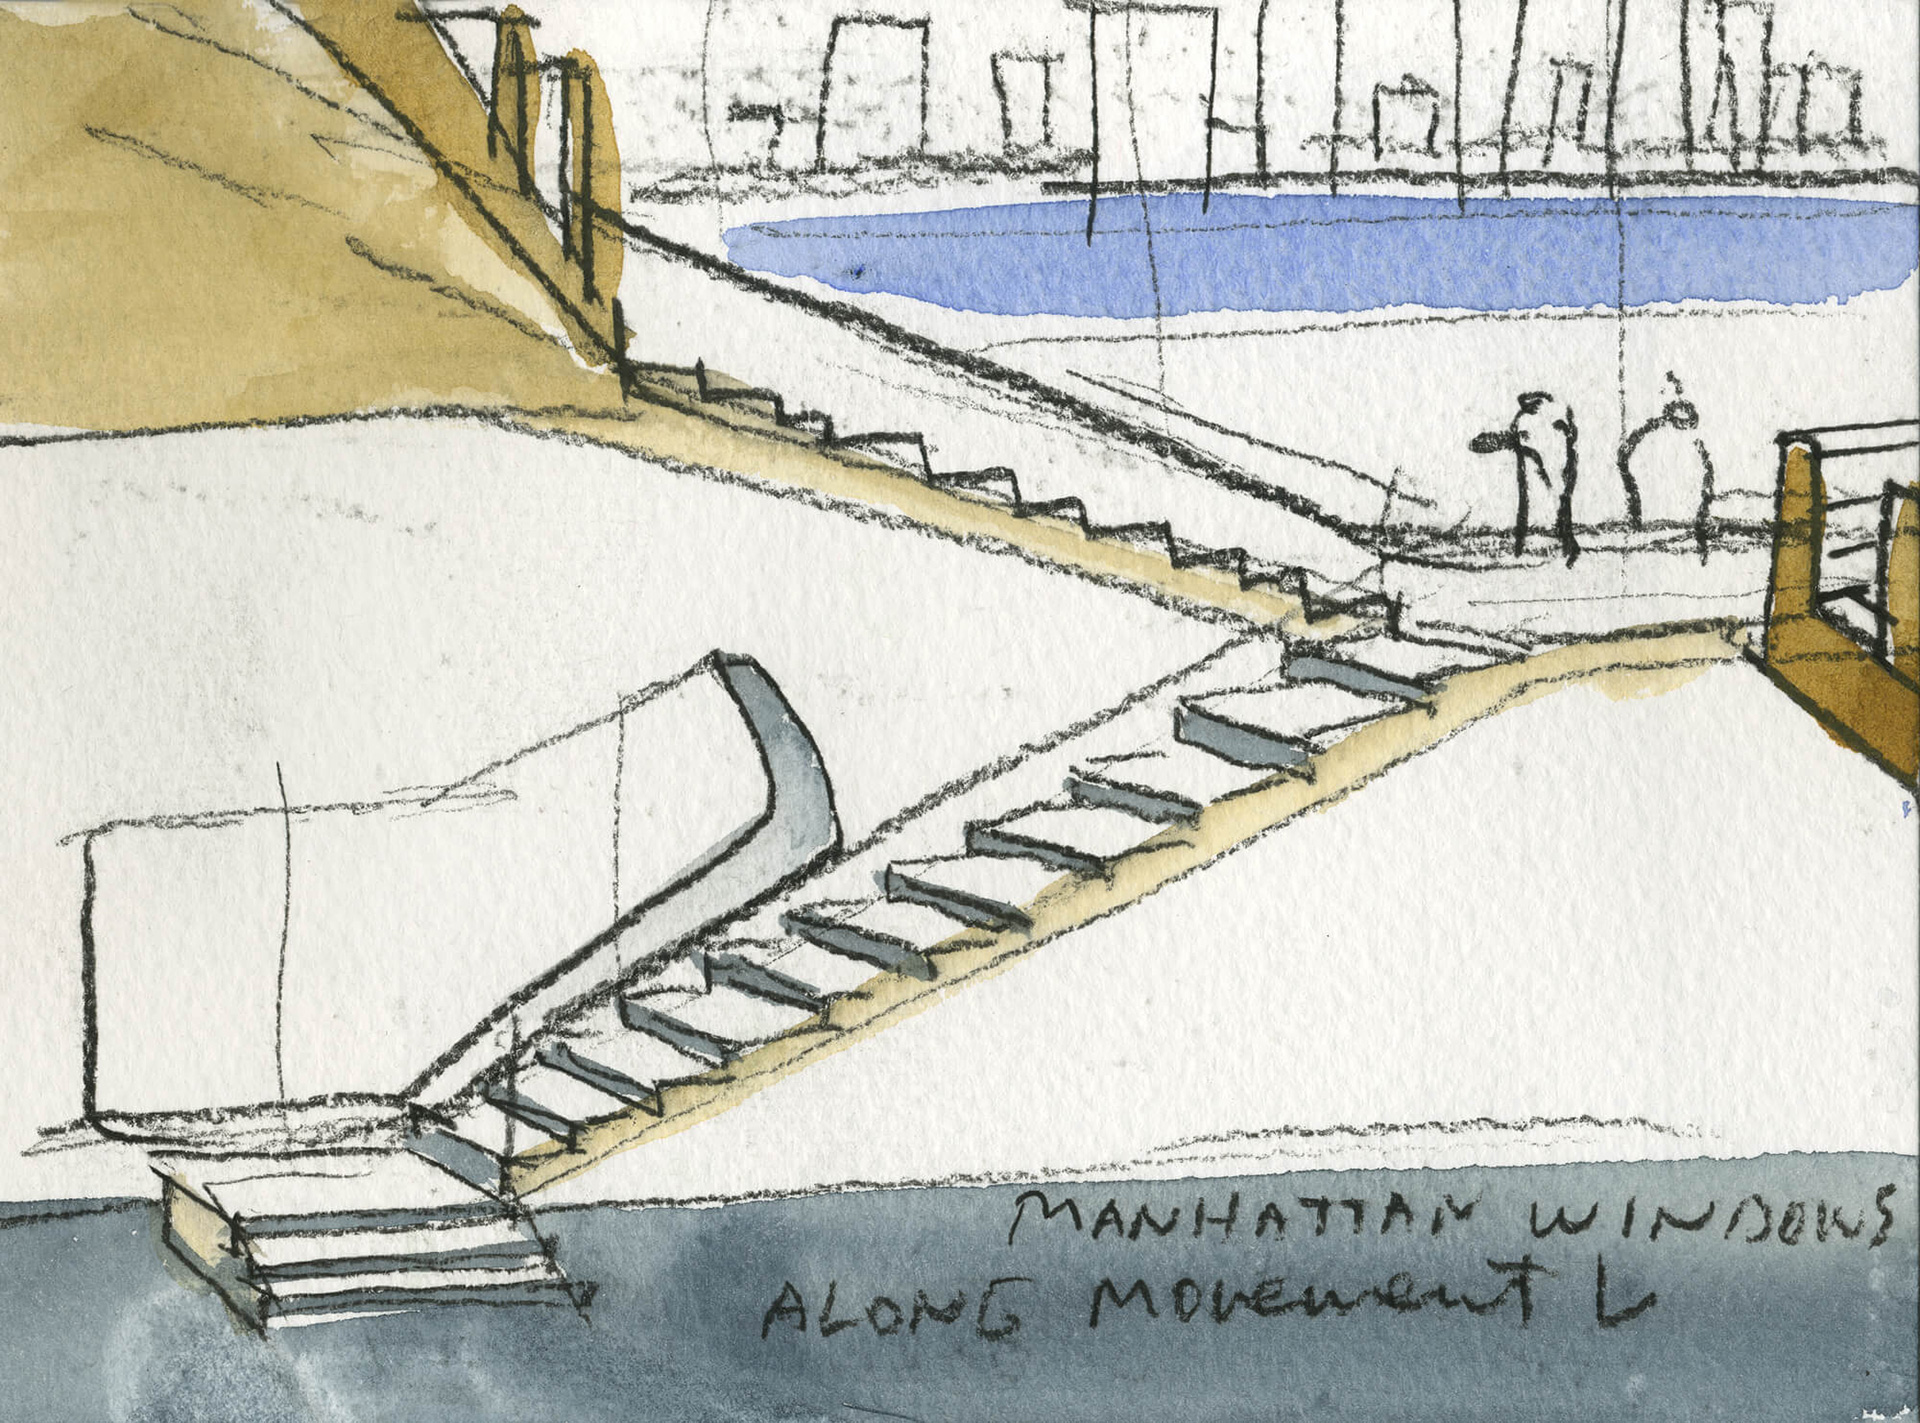 Sketch for The Hunters Point Library, Queens, New York | Steven Holl | Interview | Queens Library | Vladimir Belogolovsky | STIR